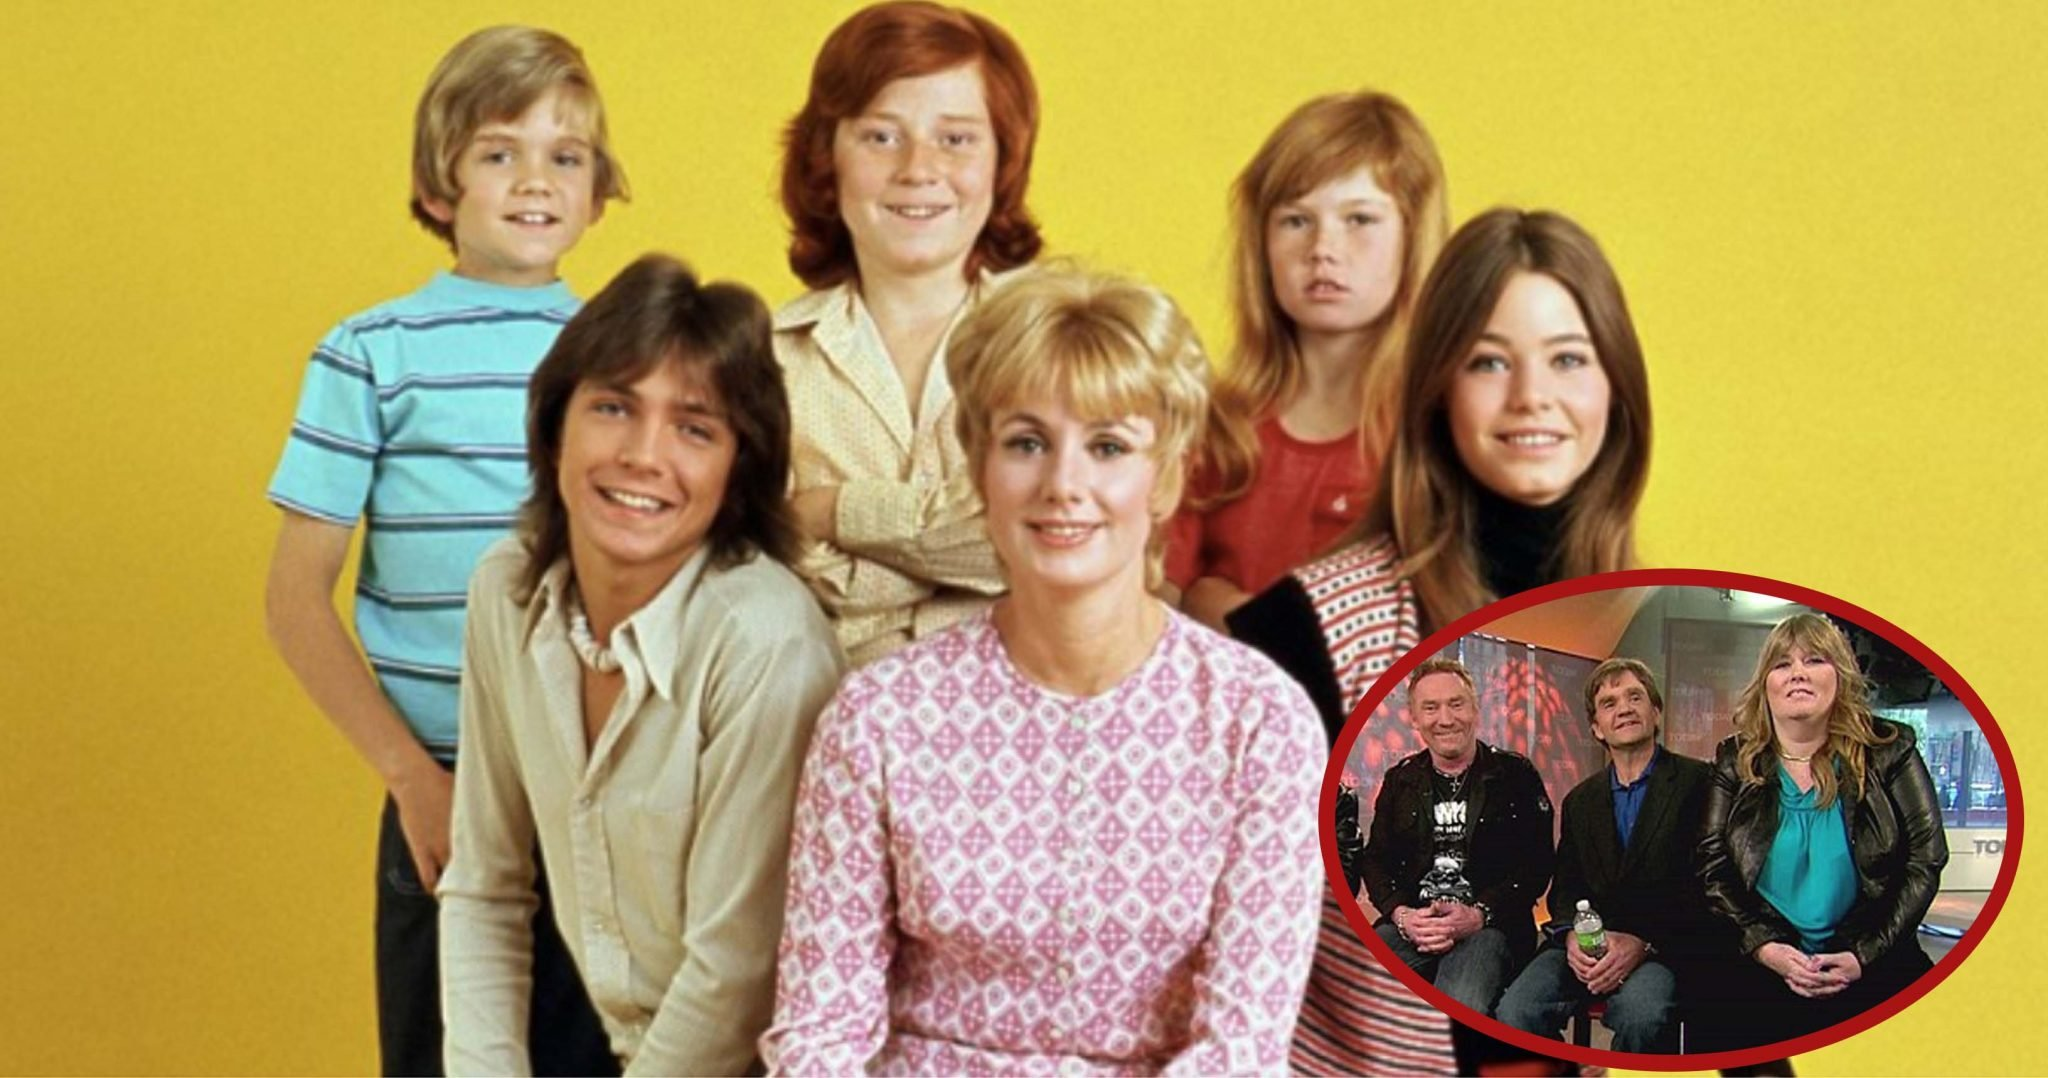 'The Partridge Family' Actors, Then And Now